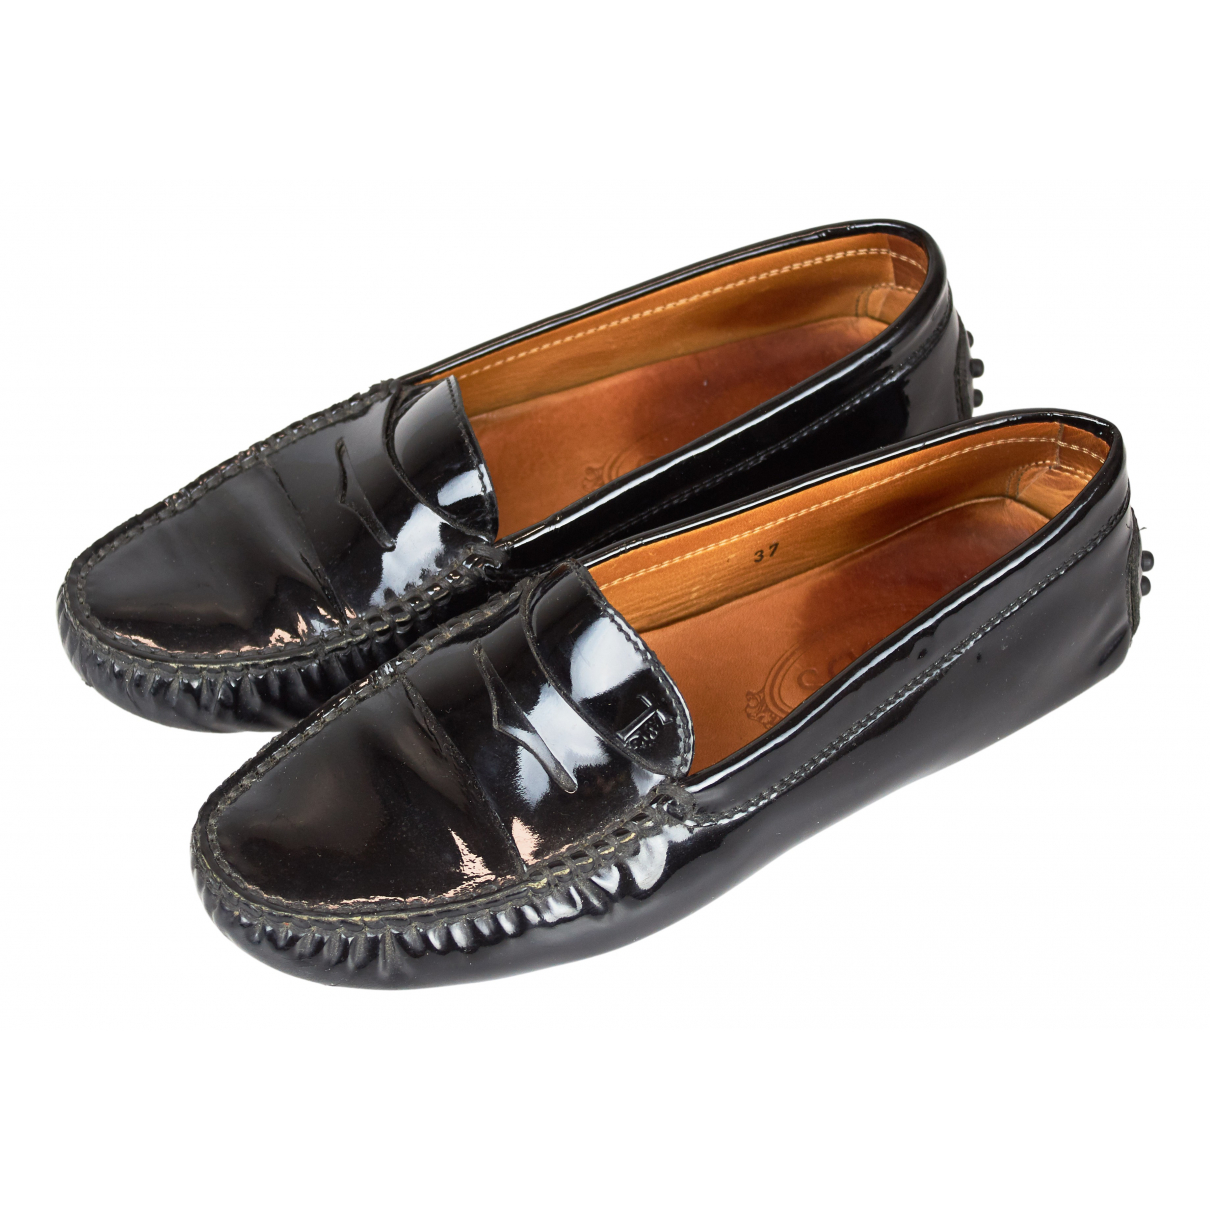 Tod's Gommino Black Patent leather Flats for Women 37 EU